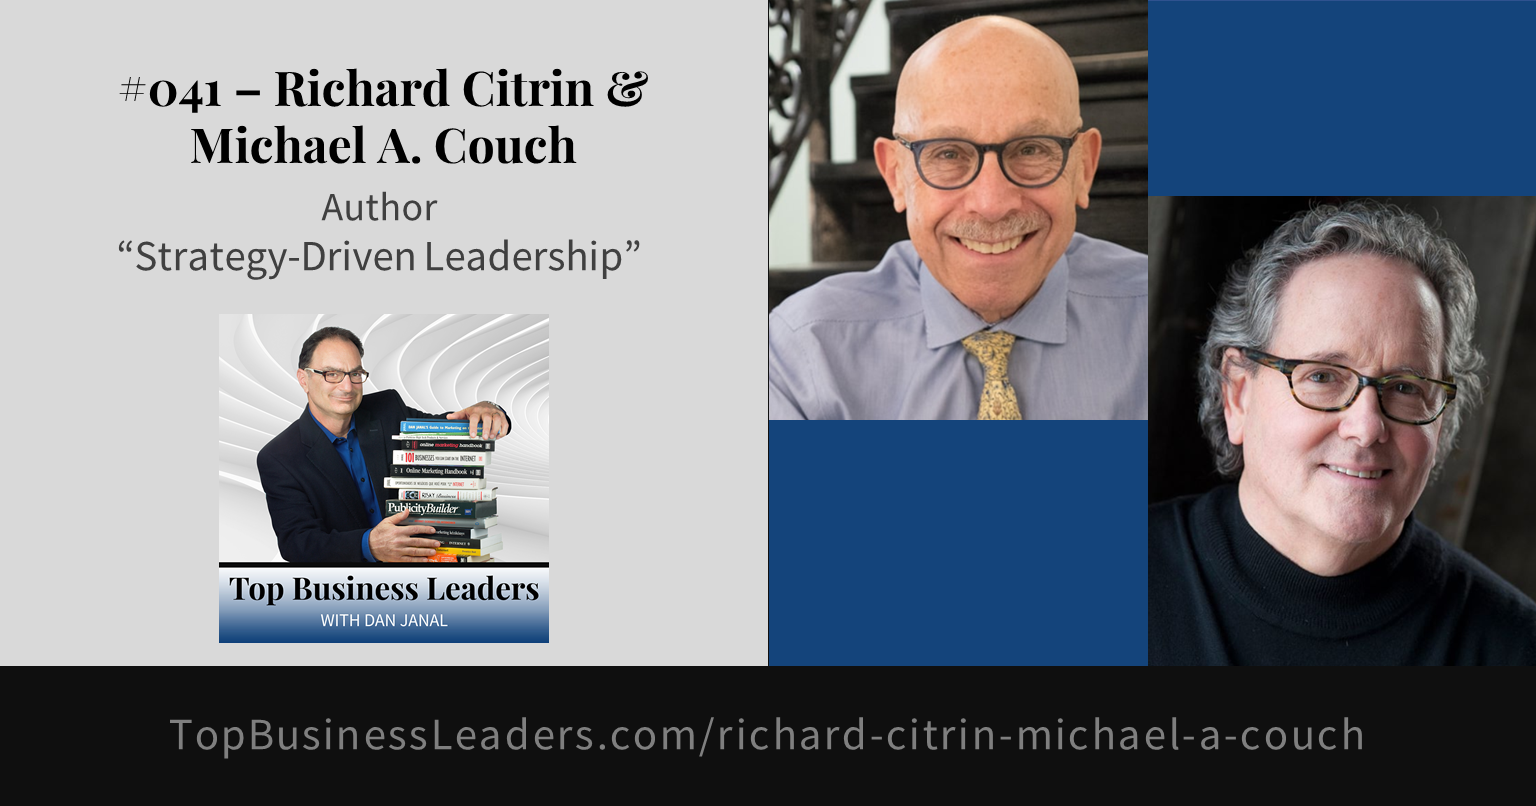 richard-citrin-michael-a-couch-authors-strategy-driven-leadership